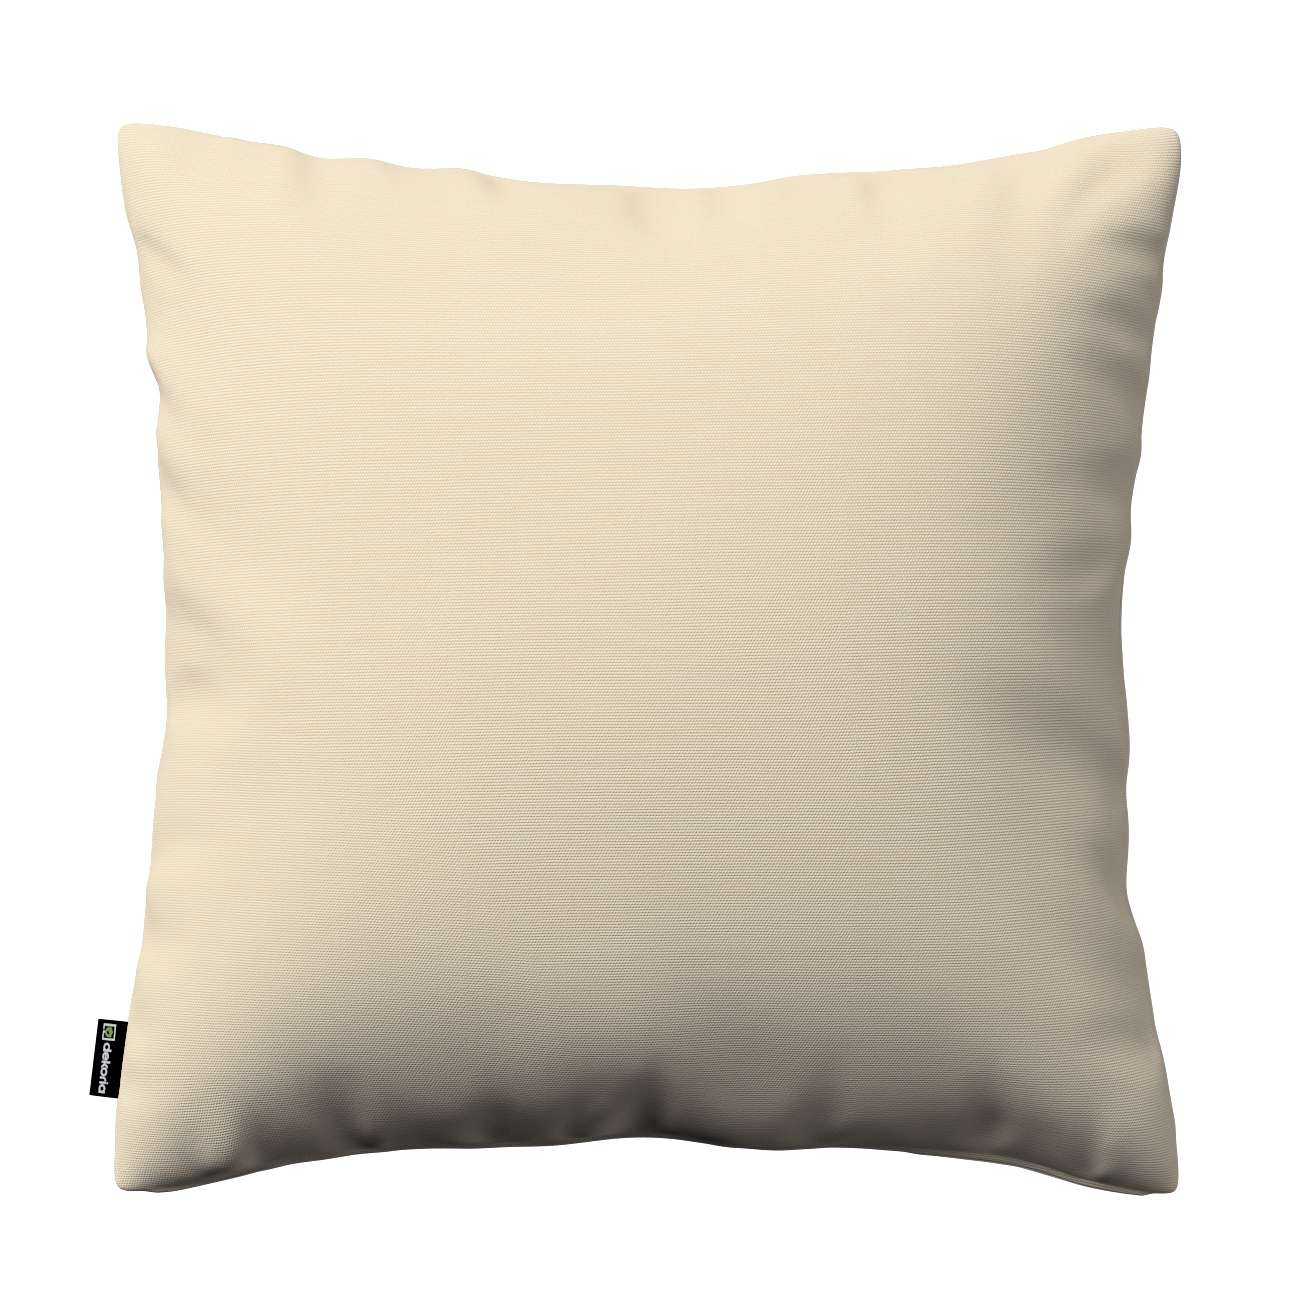 Kinga cushion cover 43 x 43 cm (17 x 17 inch) in collection Panama Cotton, fabric: 702-29